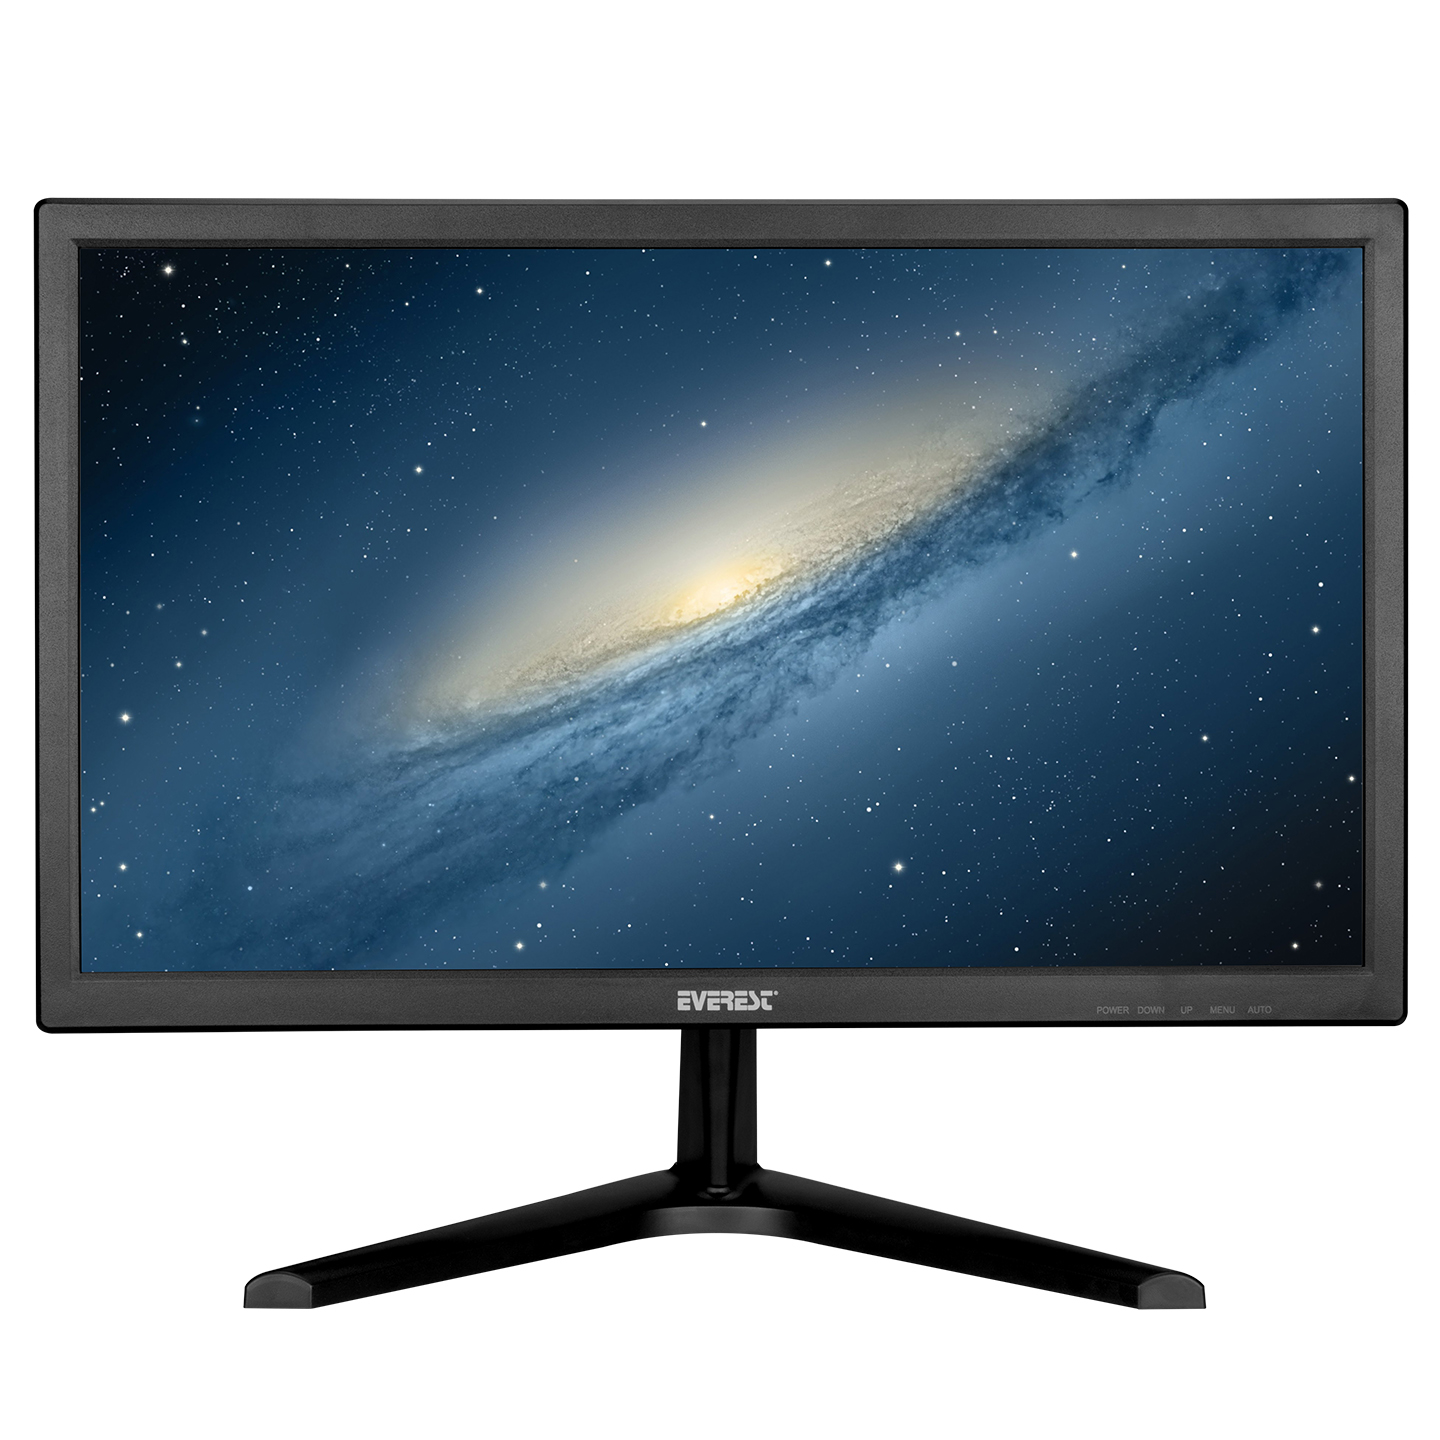 Everest M-135 18,5 VGA Led Monitör